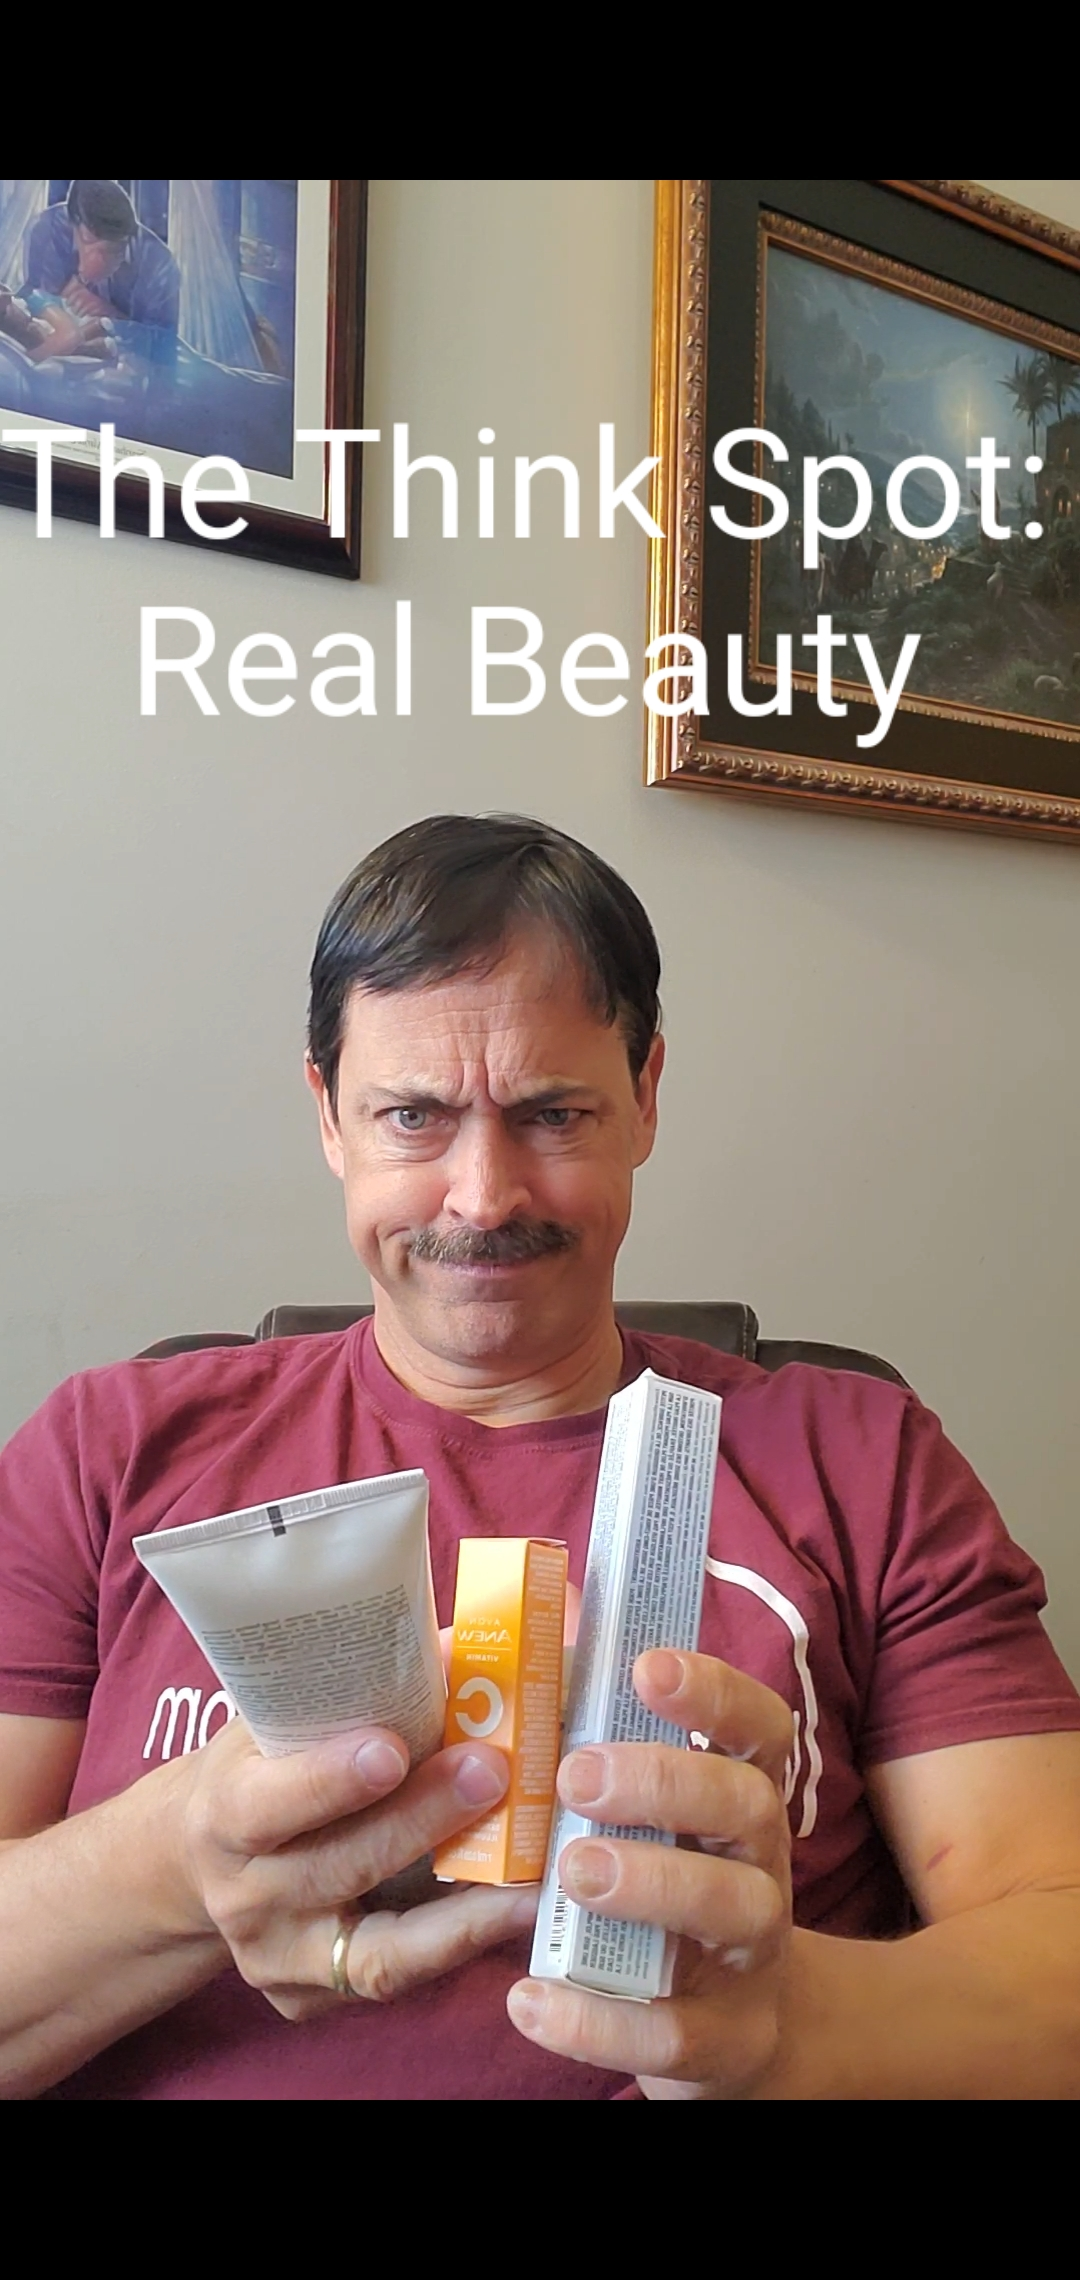 Photo of Pastor Bo Wagner holding Avon products and looking perplexed